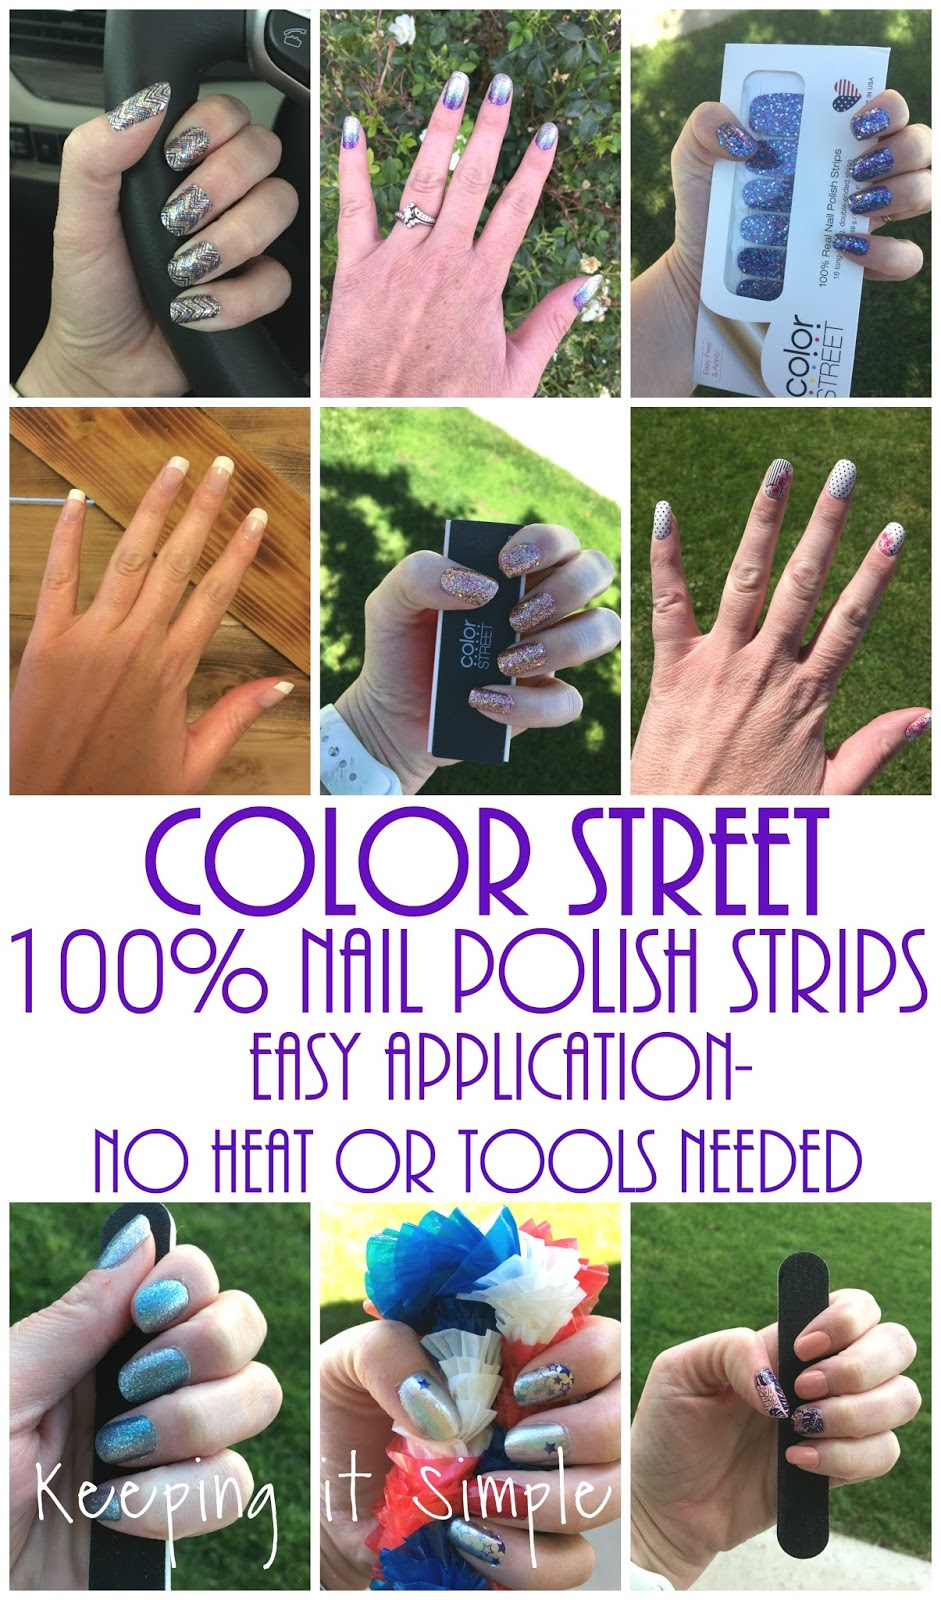 Color lines online strip game - Here Is An Example Of What I Am Talking About With Nail Polish I Had A Sample Of The Color Street The Ones That Are A Design And I Only Did Two